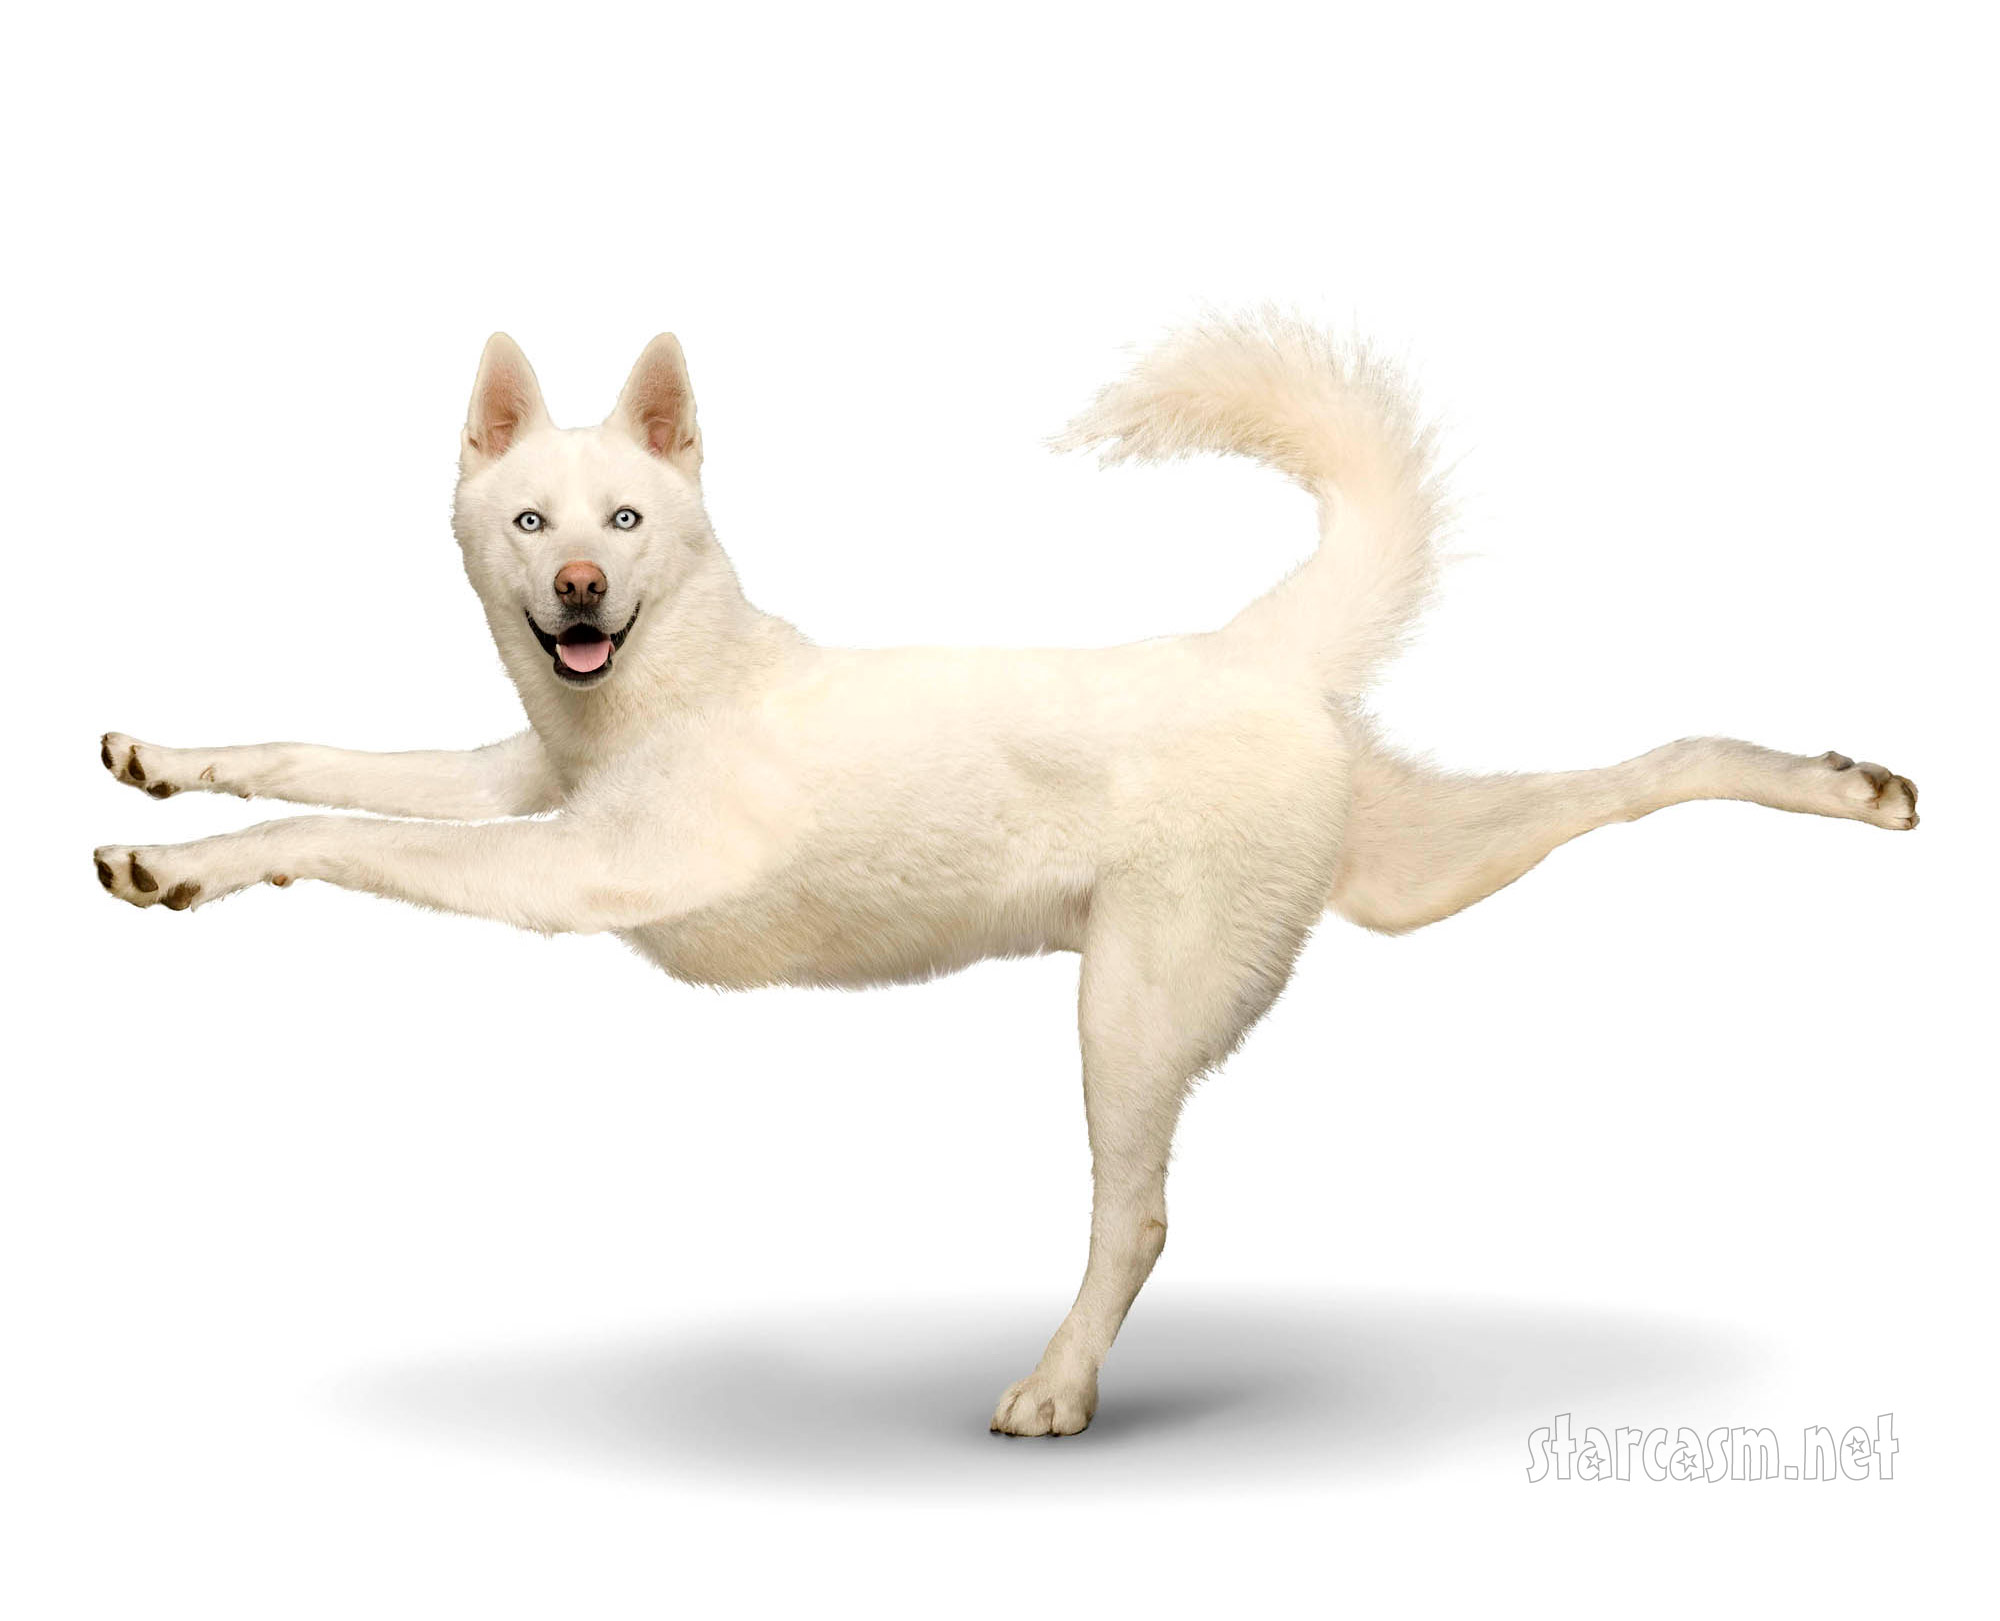 Cute Yoga Dogs Image source